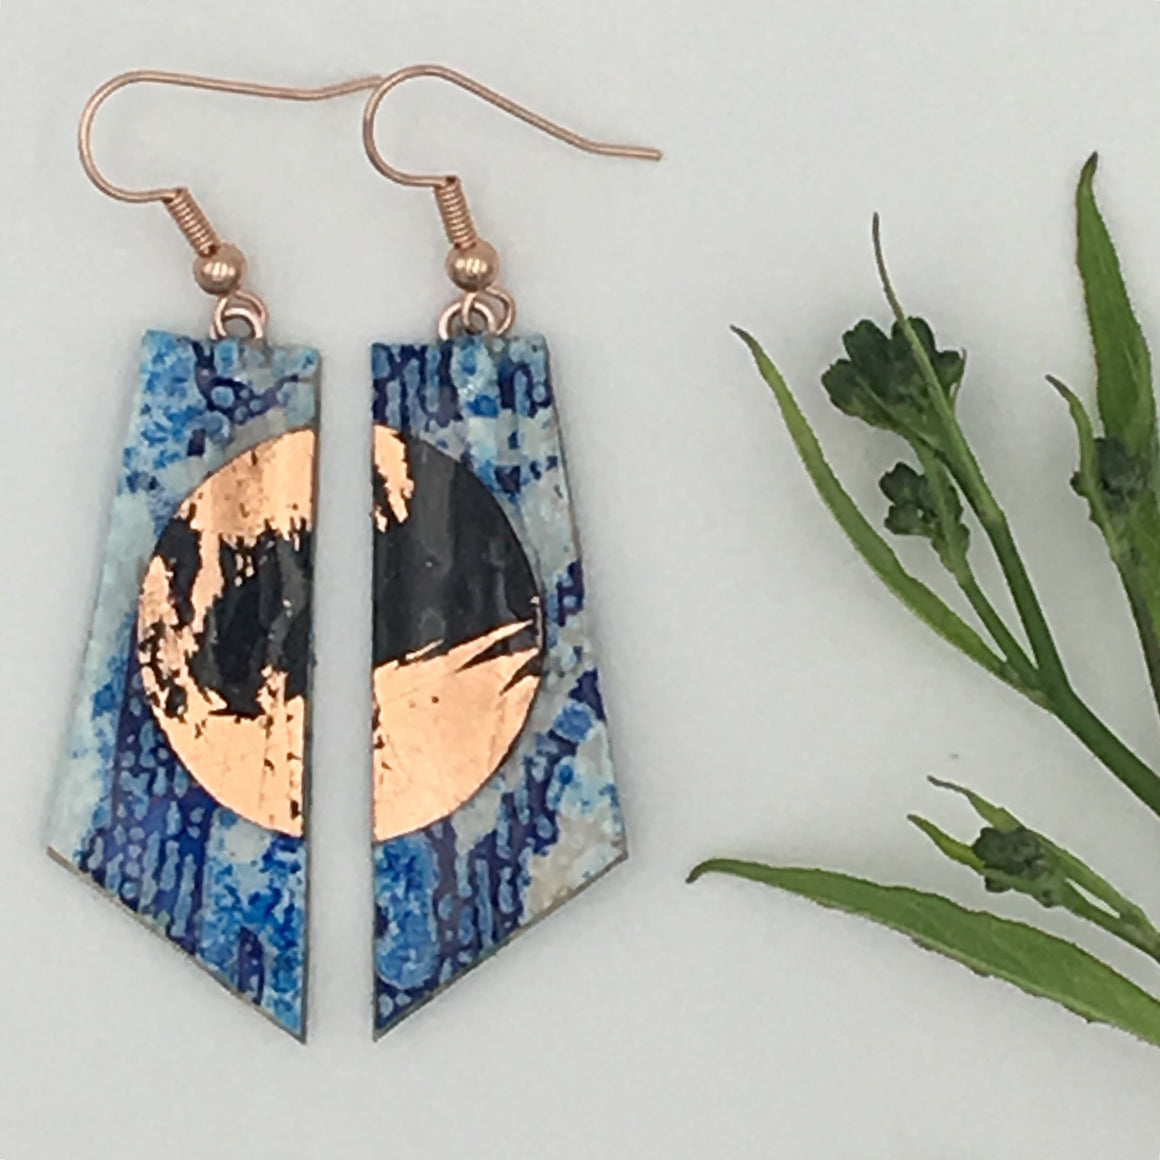 Cora batik textile earrings in blue/black/rose gold